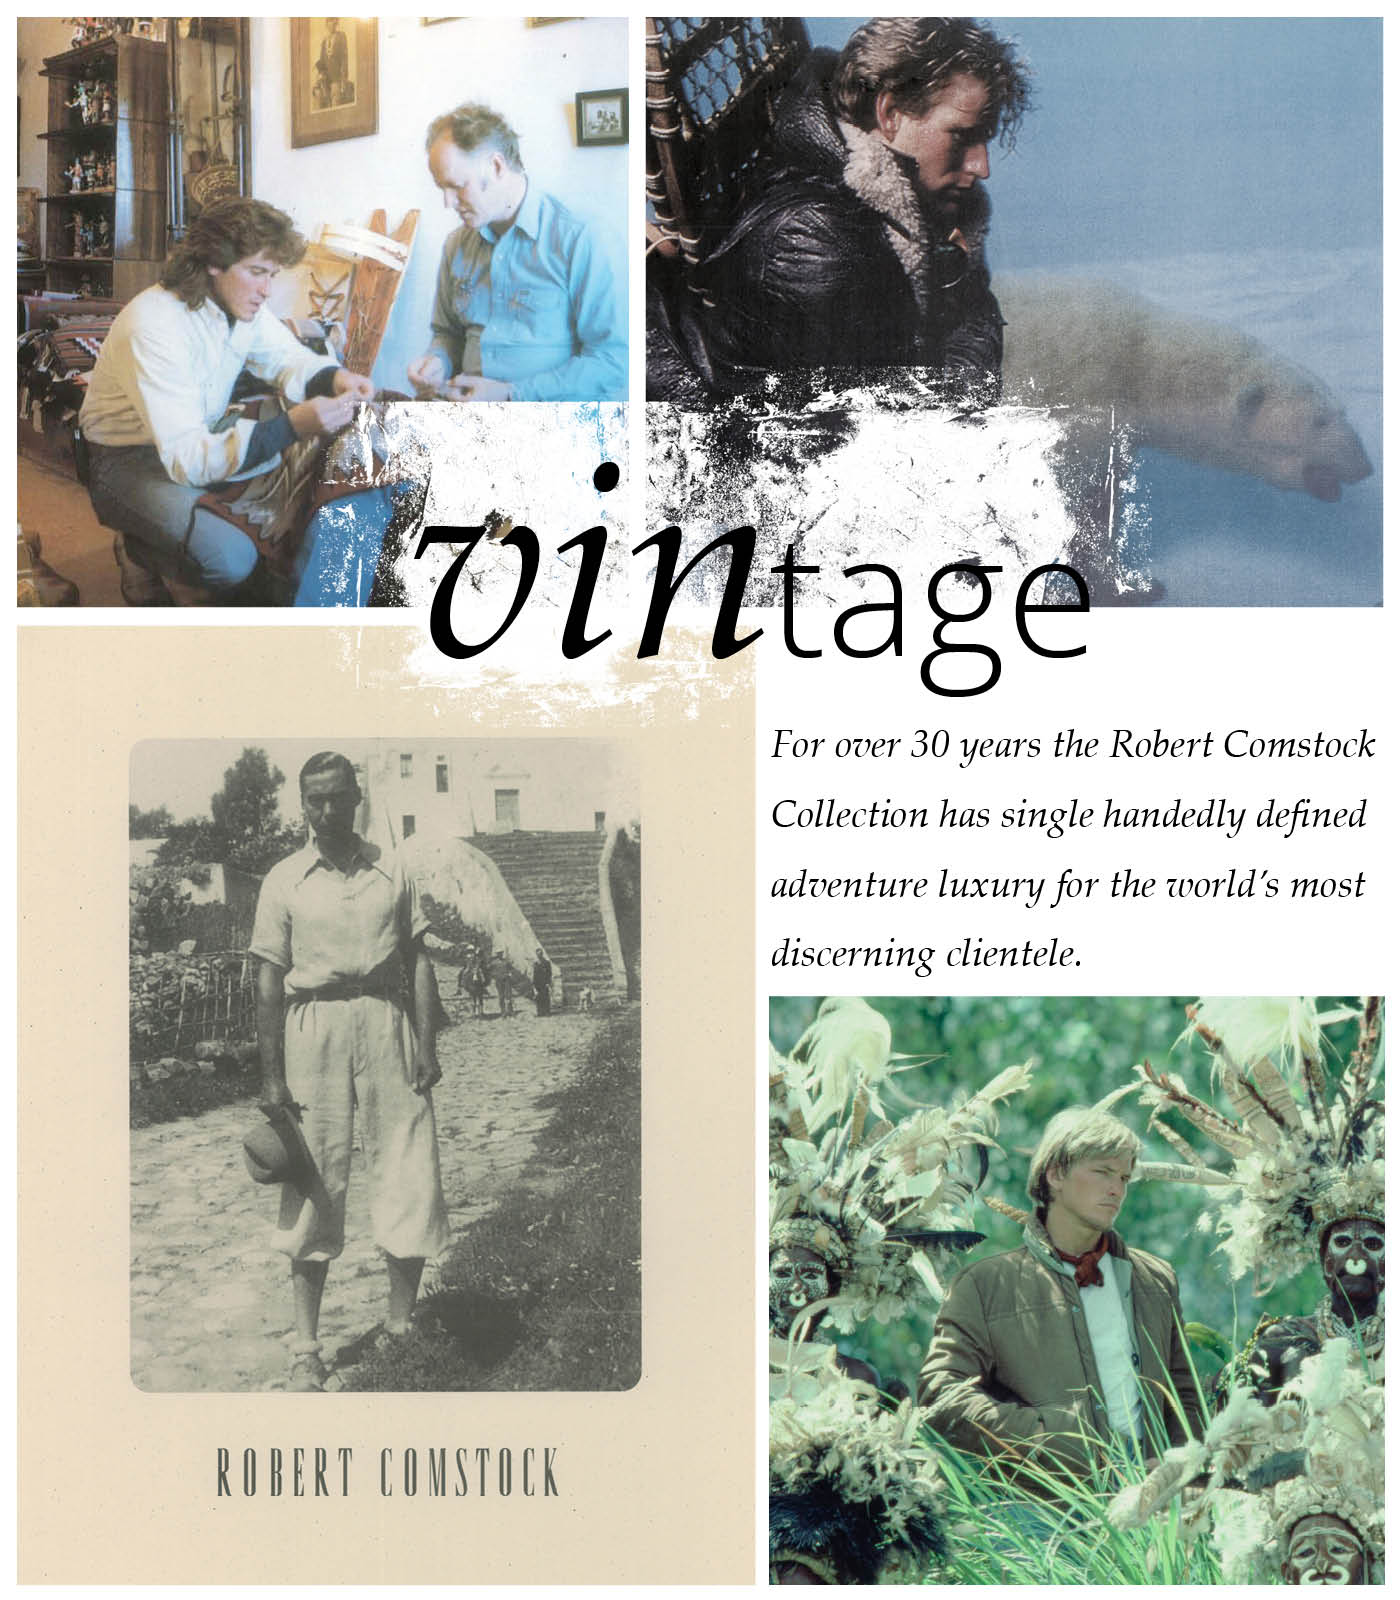 VintageCollection_Collage.jpg